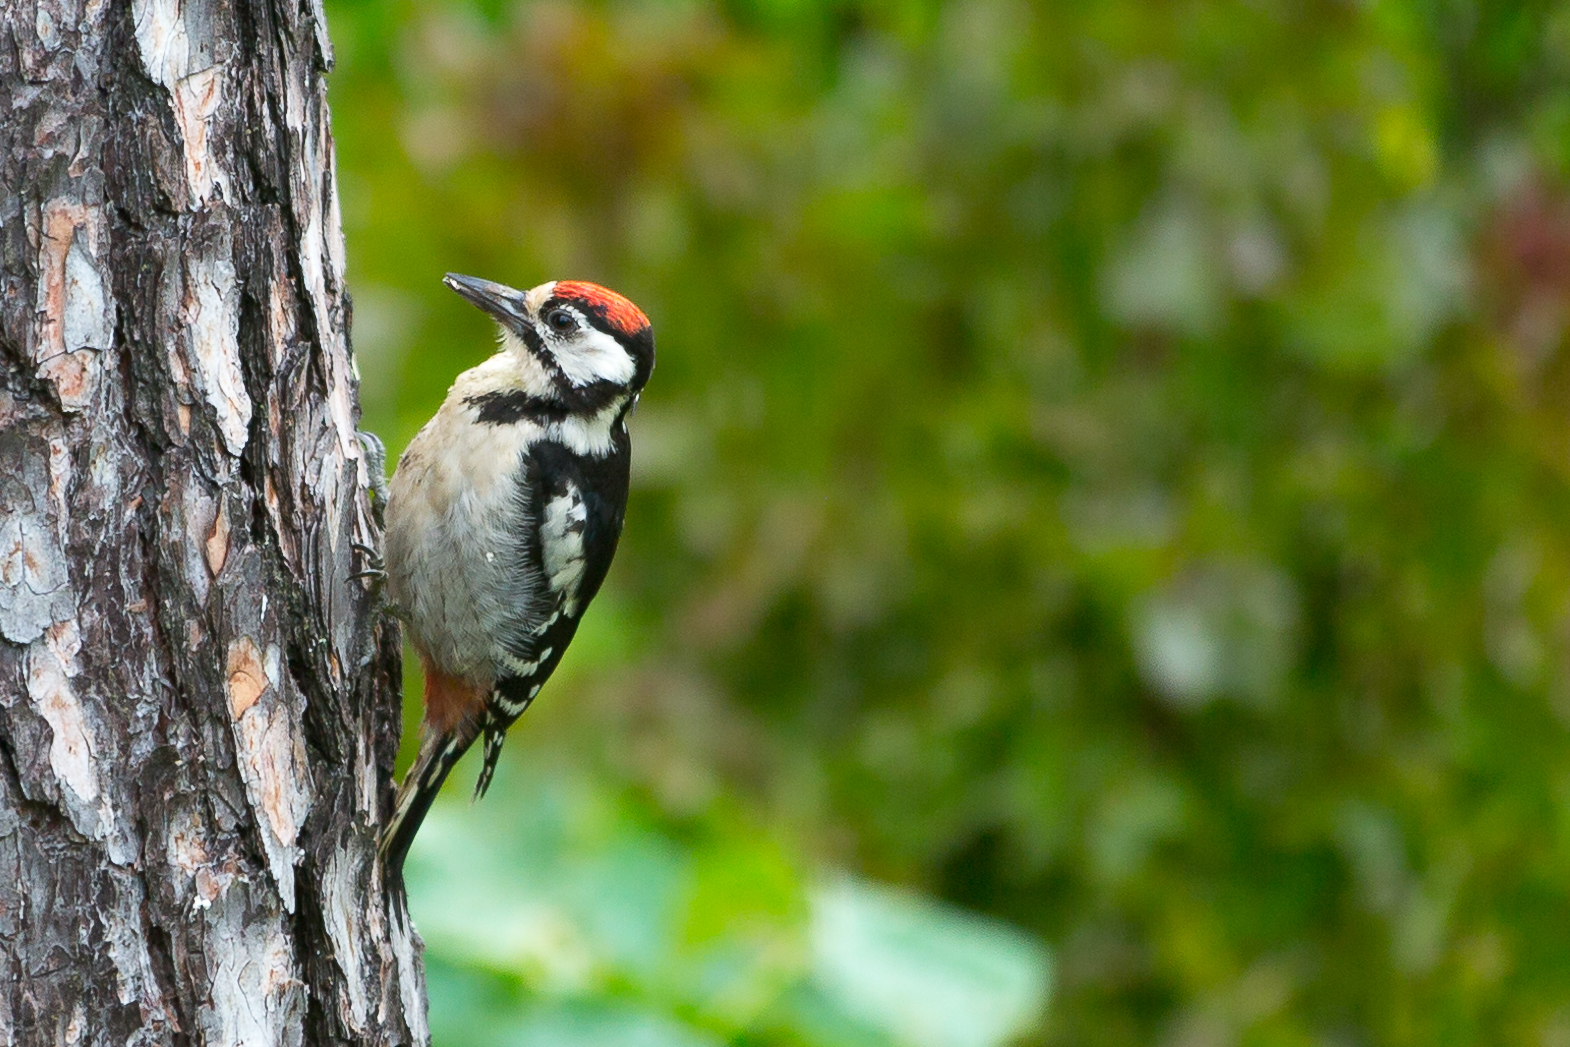 A Great Spotted Woodpecker